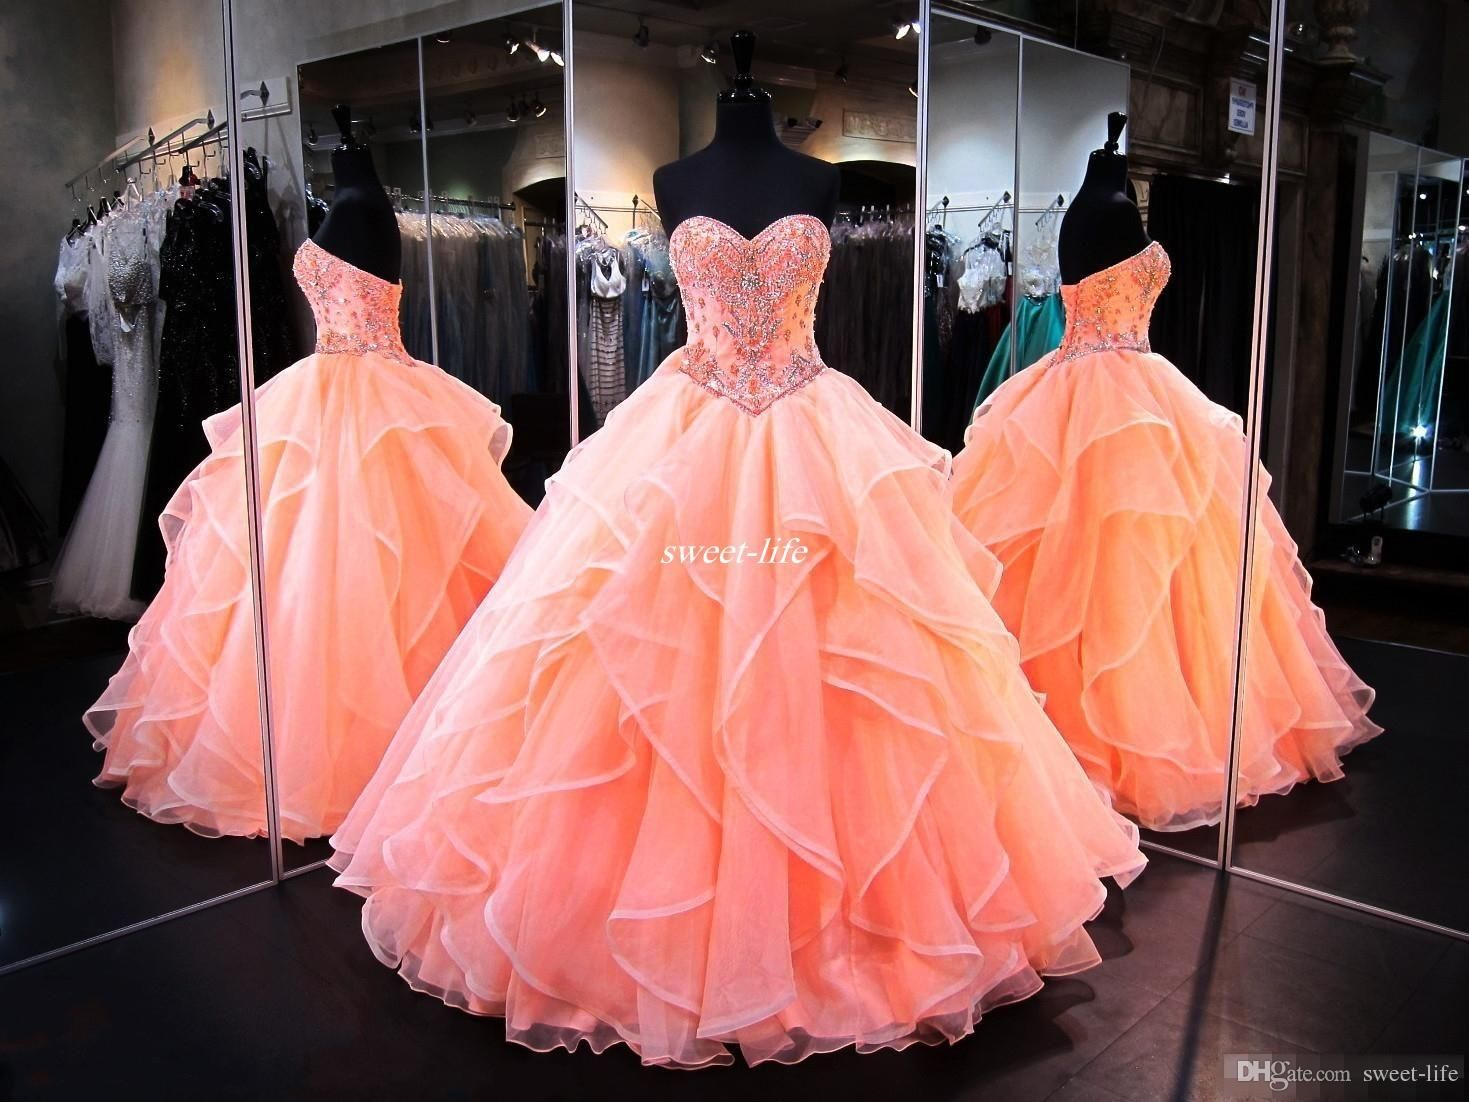 824d202f5294b Coral Quinceanera Dresses 2017 Sweetheart Masquerade Ball Gowns Crystal  Beaded Corset Organza Ruffles Floor Length Long Sweet 16 Prom Gowns  Quinceanera ...